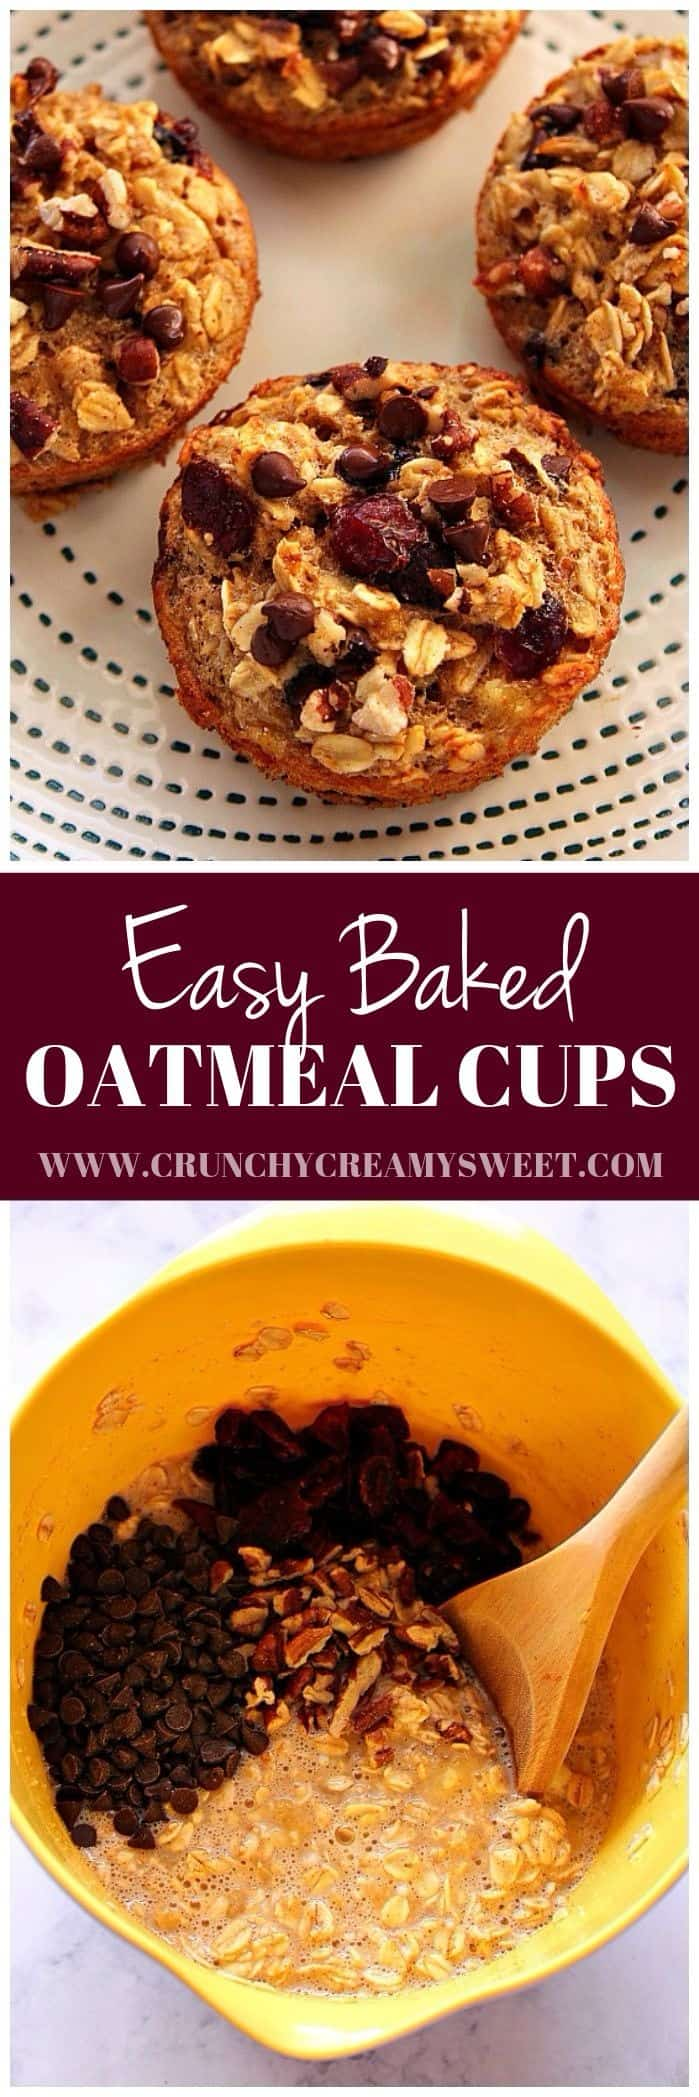 easy baked oatmeal cups recipe long Easy Baked Oatmeal Cups Recipe